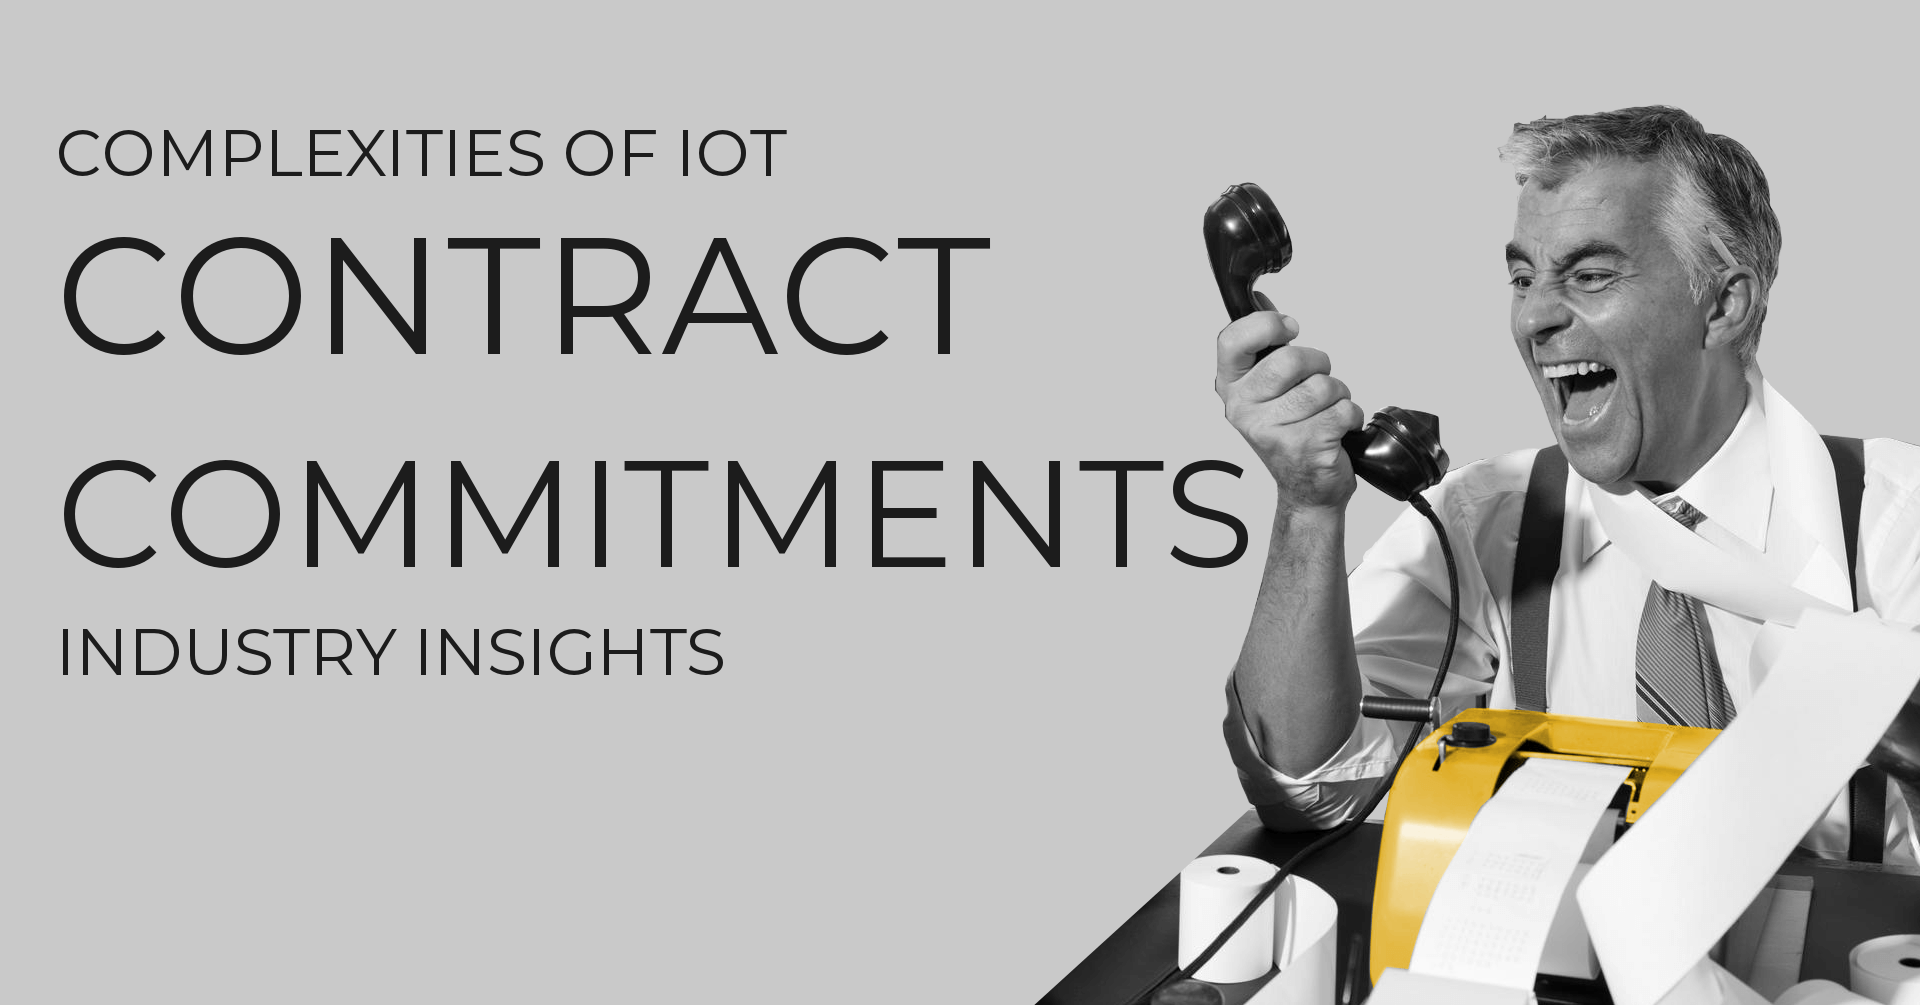 Complexities of IoT Contract Commitments